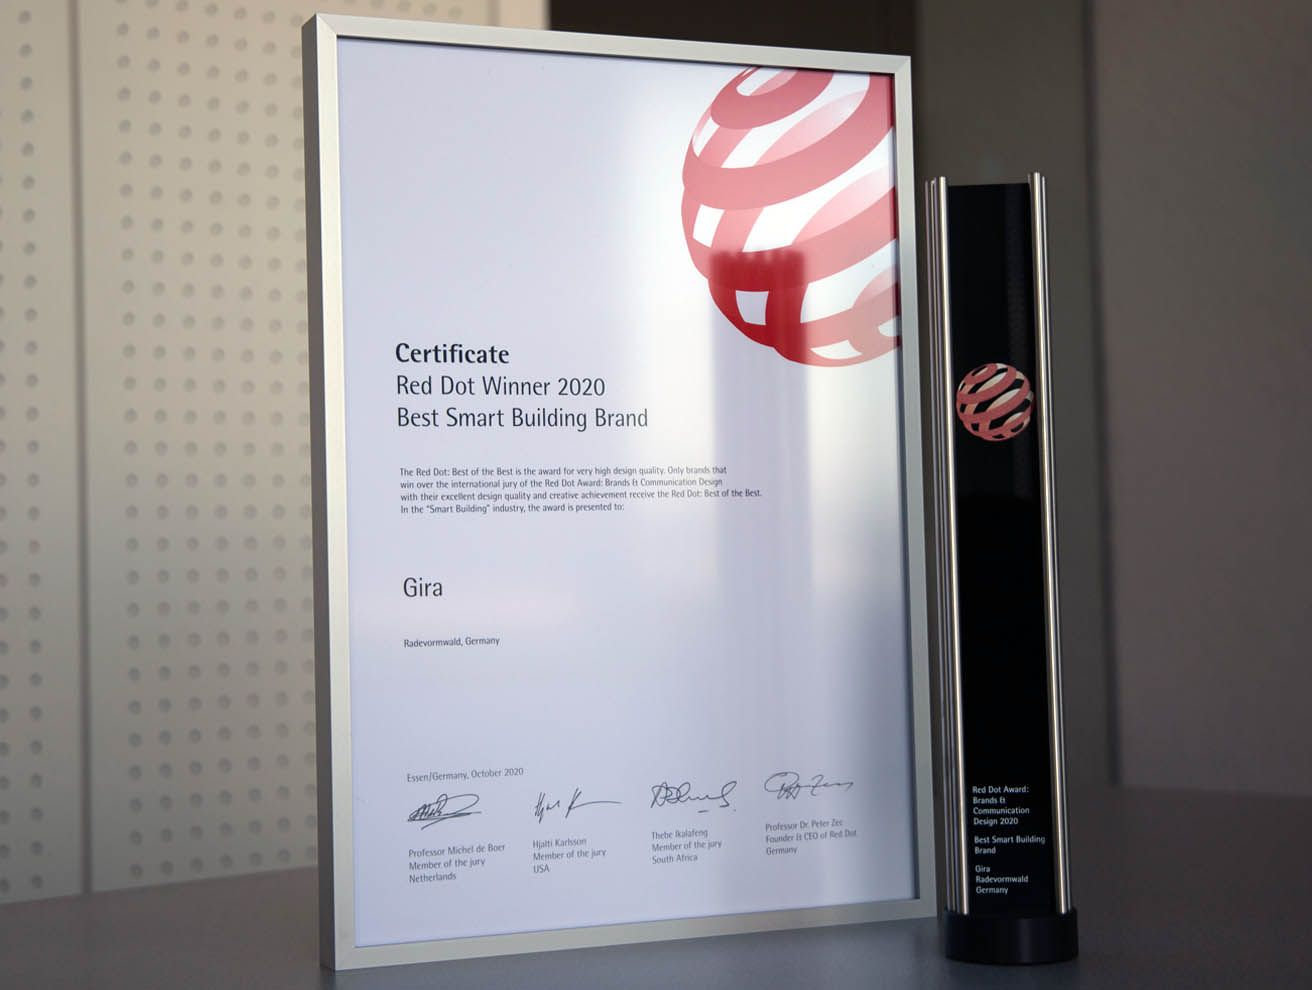 Gira Red Dot Award 2020 Best Smart Home Brand